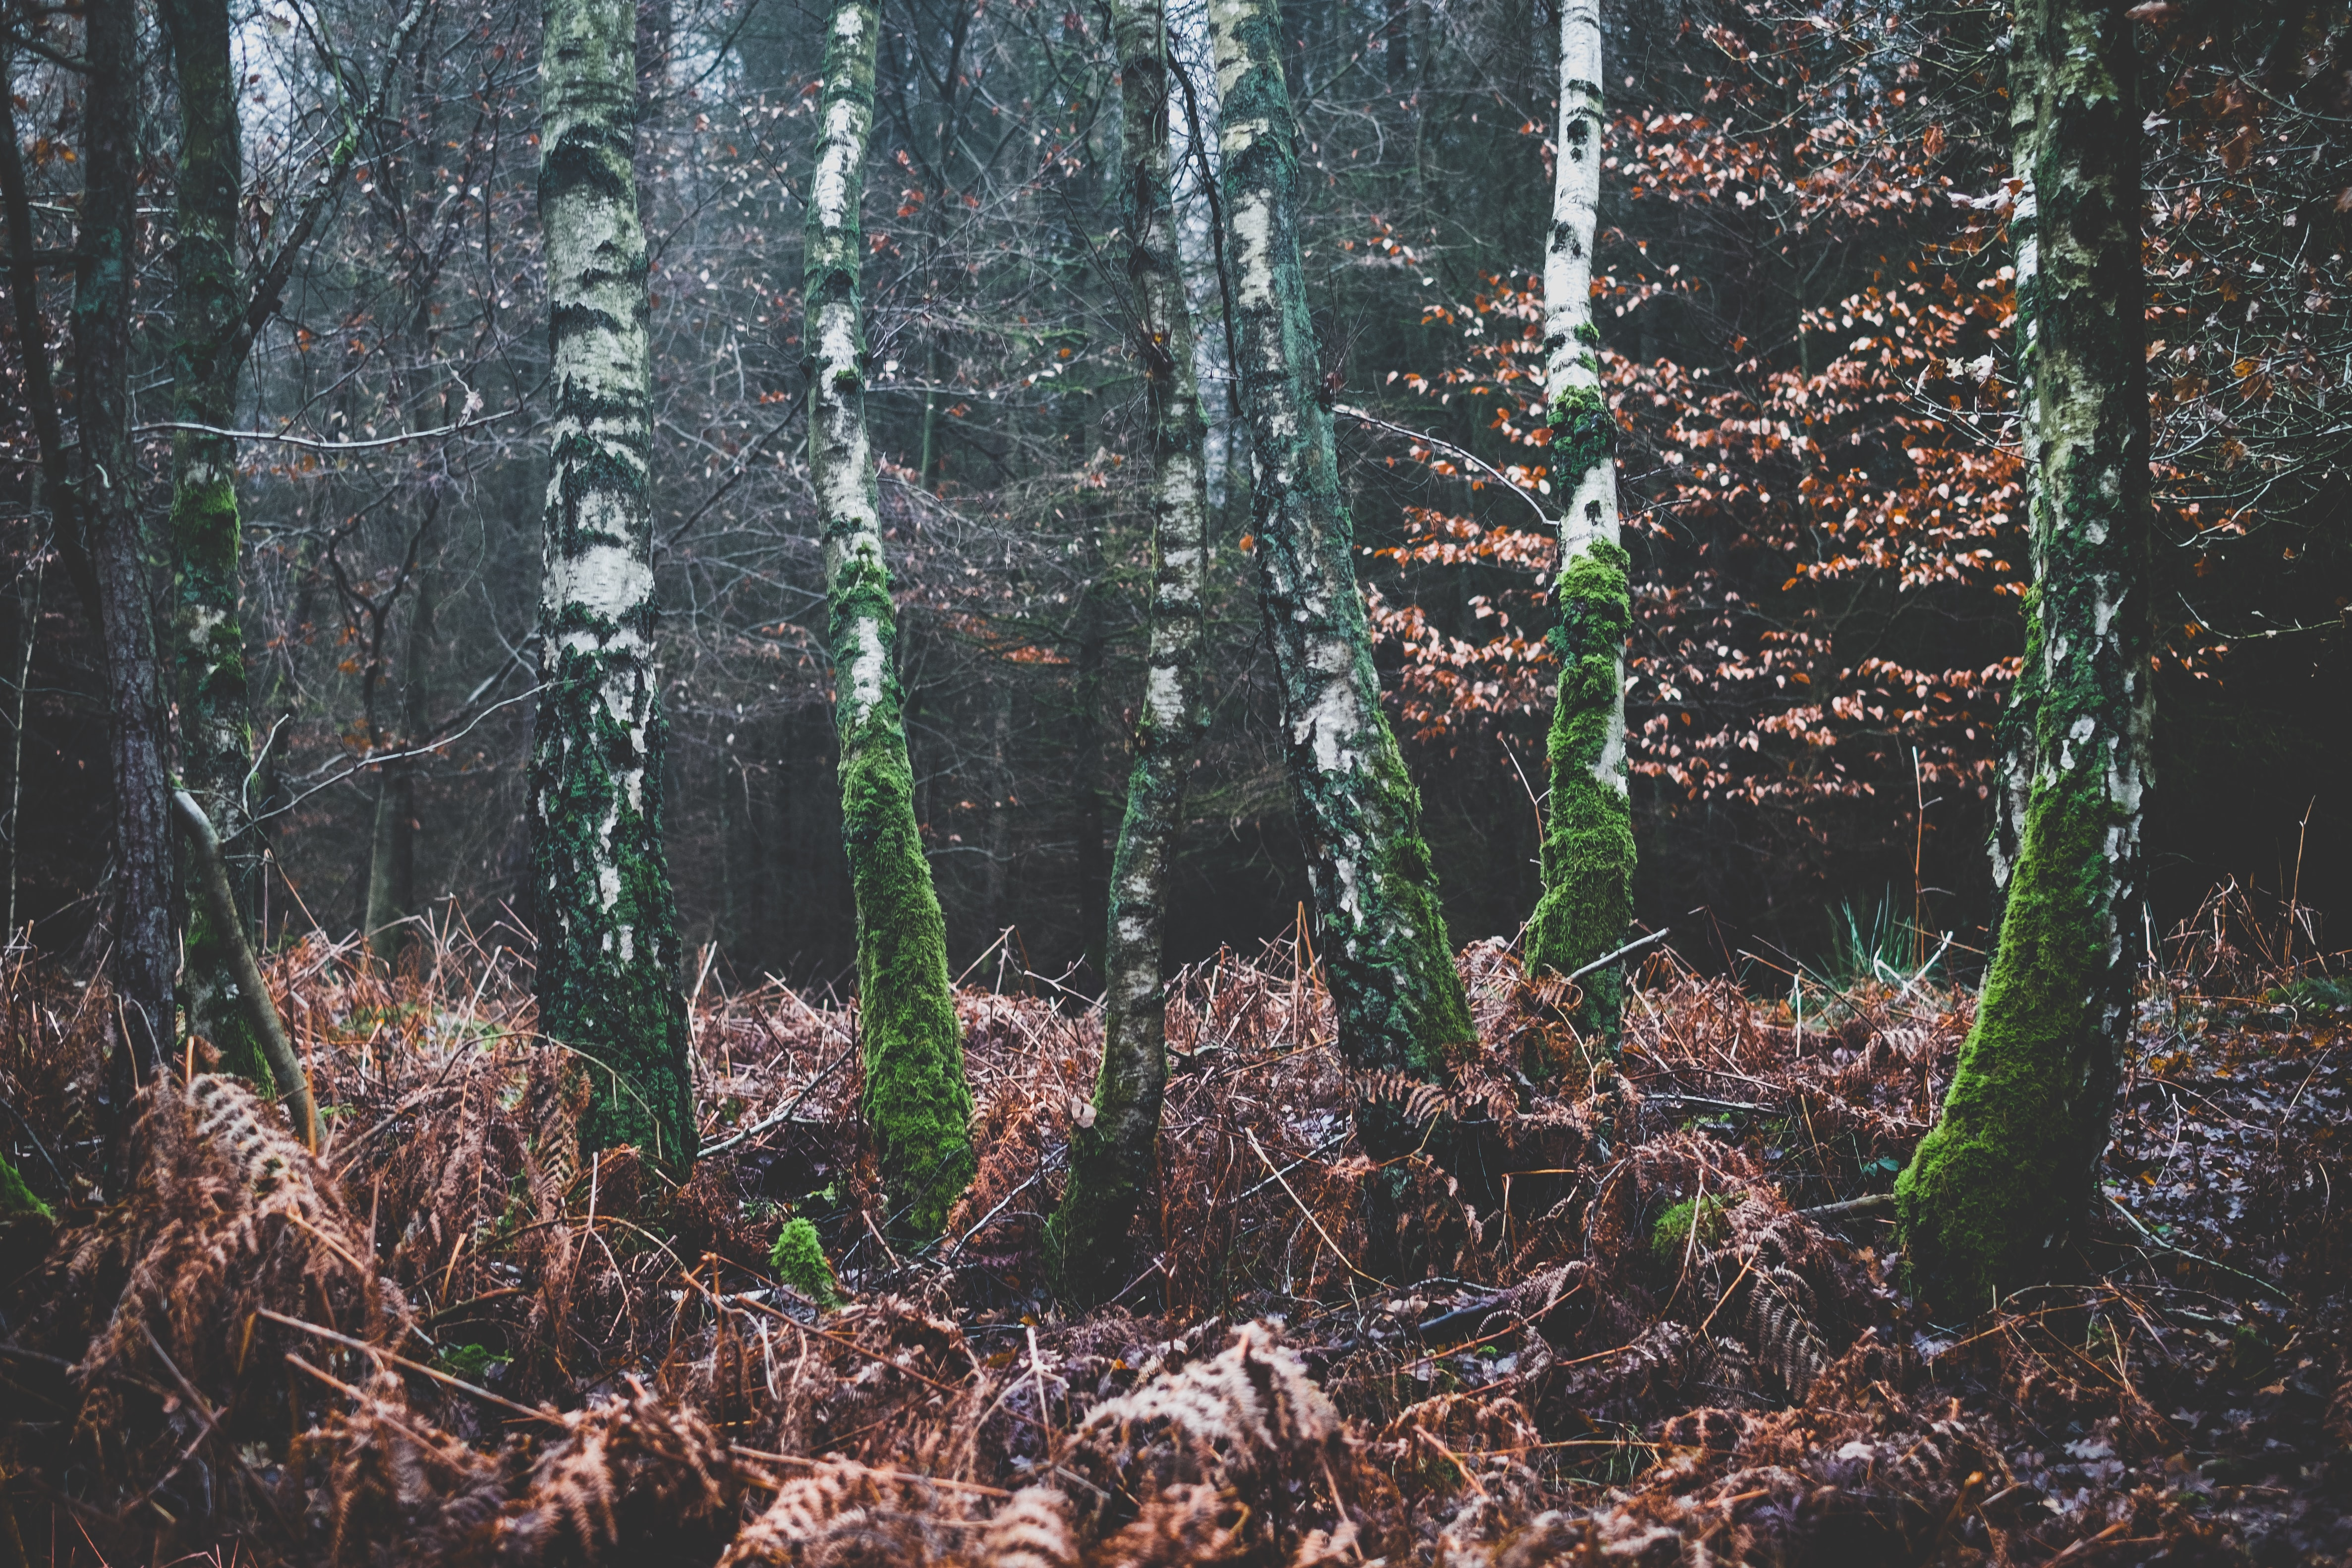 Moss-covered birch trees in a forest during autumn